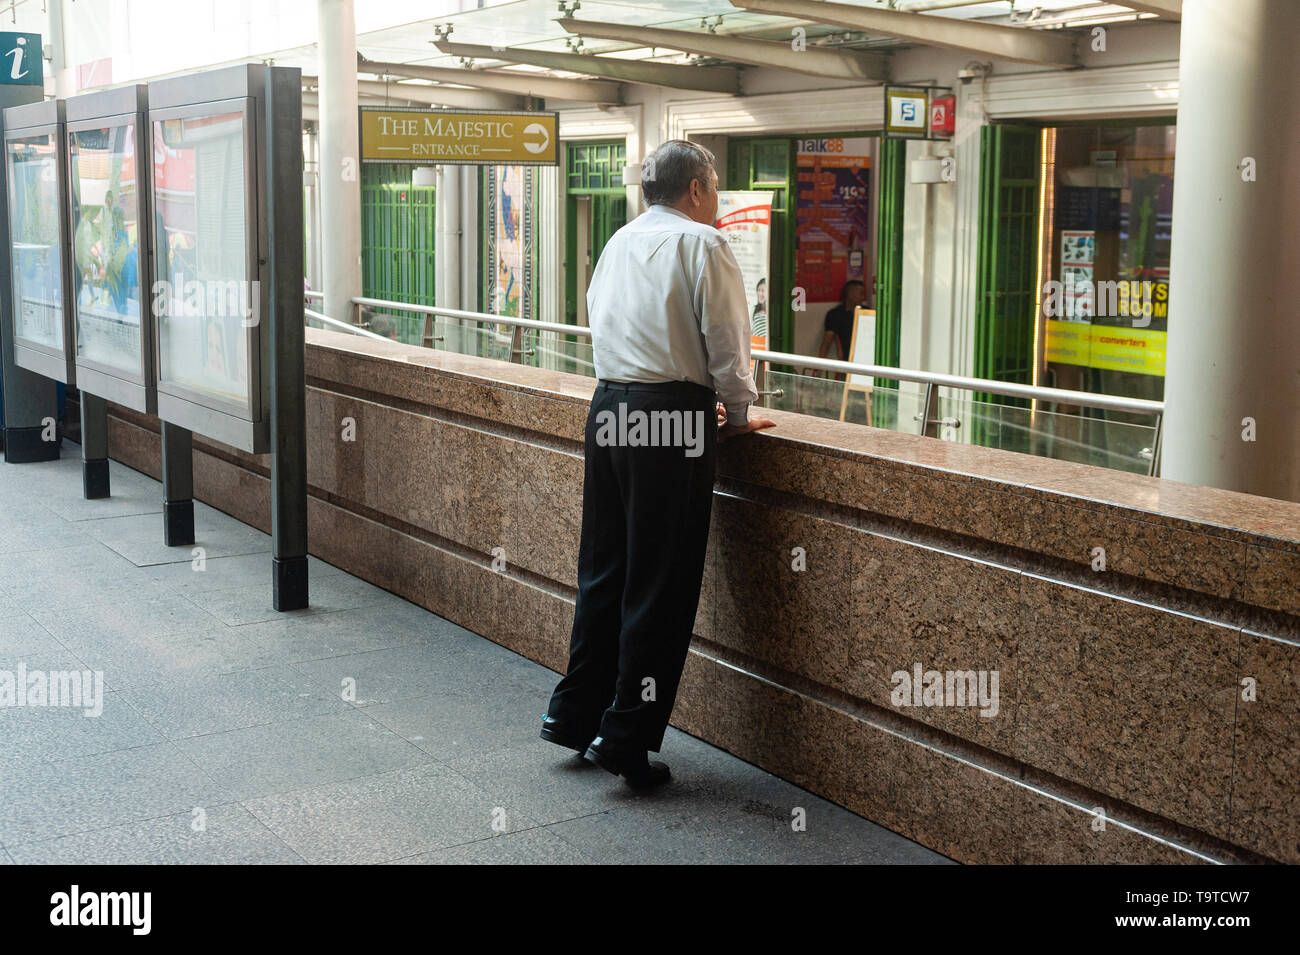 29.03.2019, Singapore, Republic of Singapore, Asia - A man in Chinatown is standing on his toes and stretching. - Stock Image